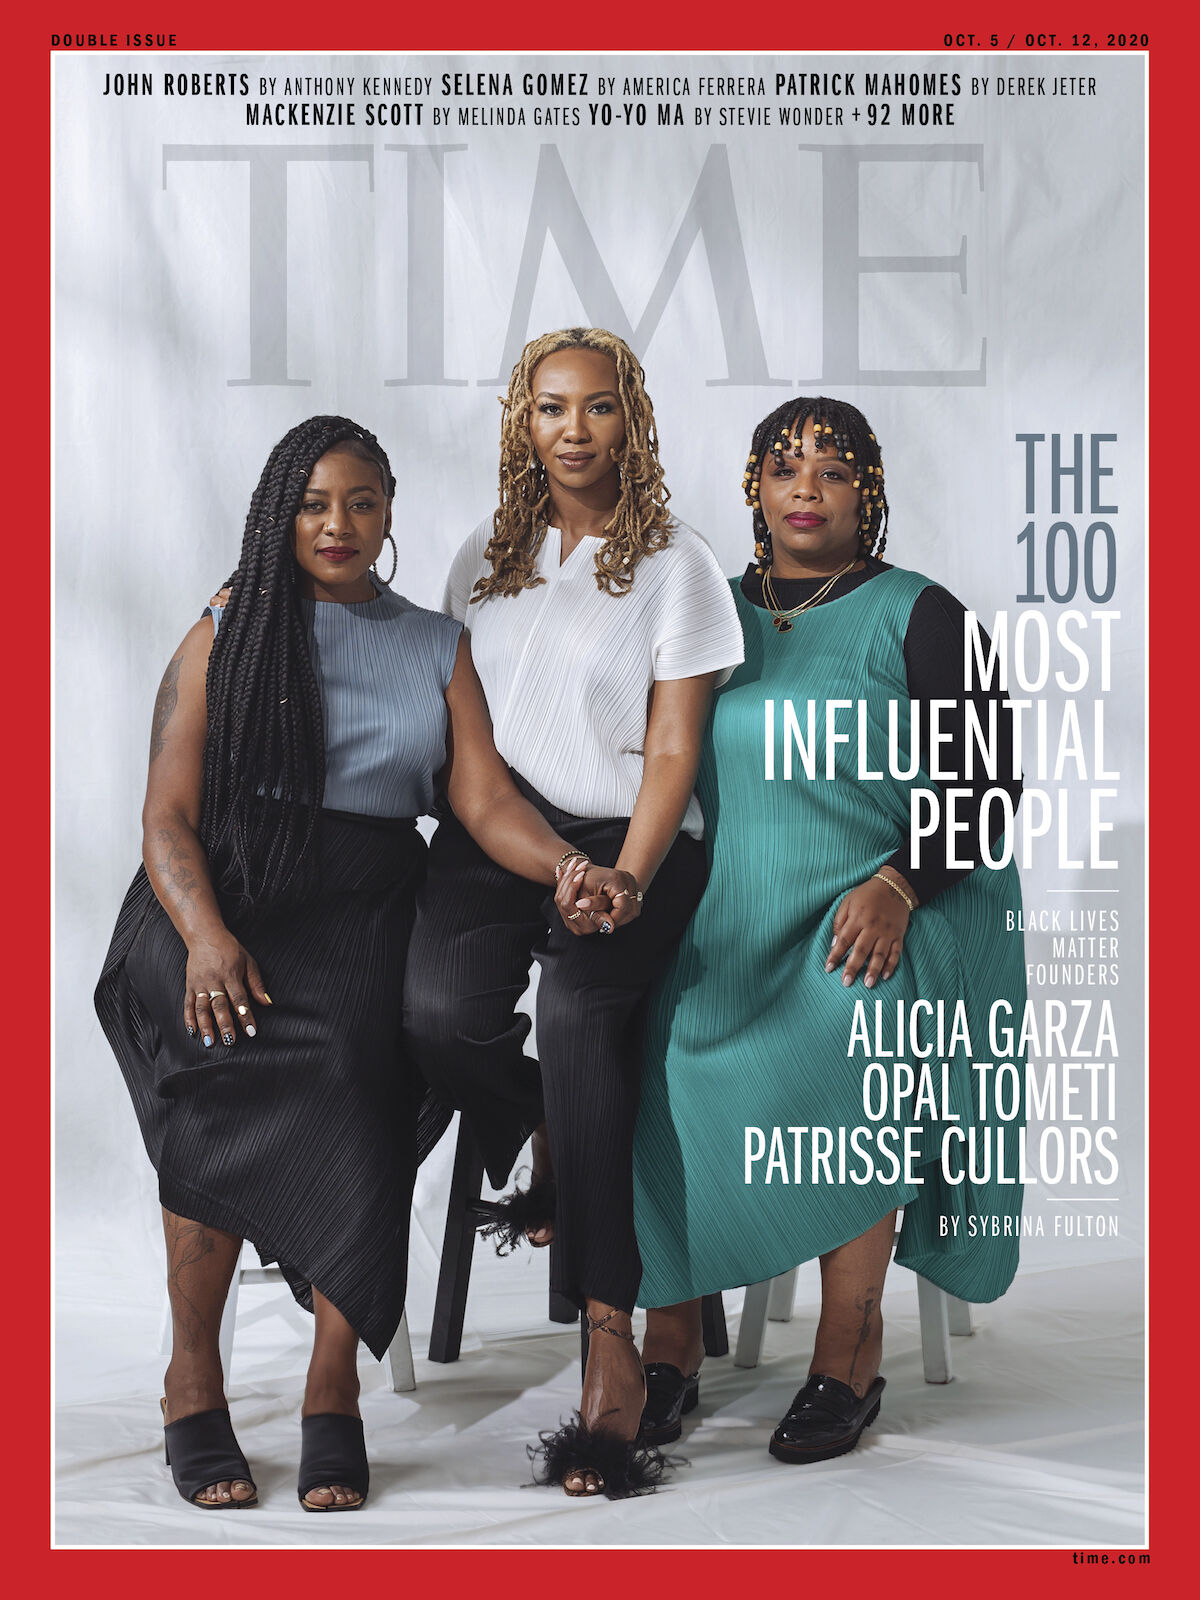 Black Lives Matter co-founders Patrisse Cullors, Alicia Garza, and Opal Tometi on the cover of Time magazine. Photo by Kayla Reefer for Time.